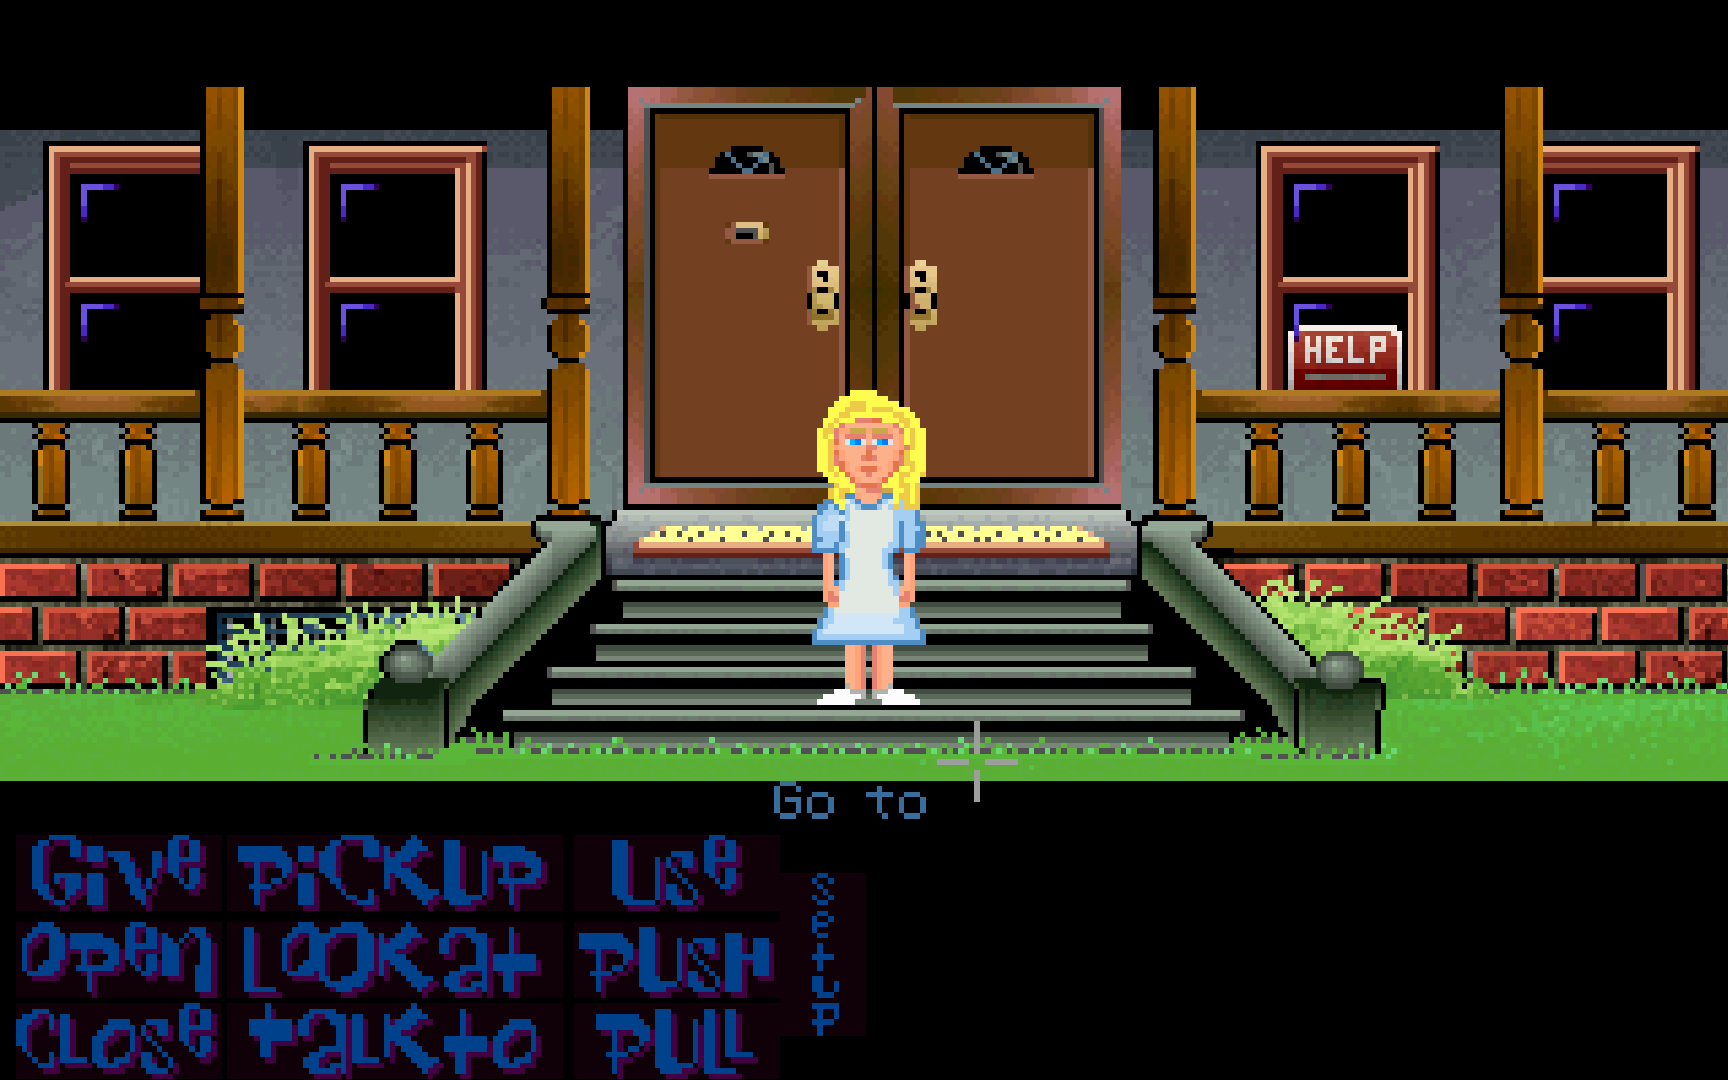 Screenshot 3 of Alice in Maniacland width=